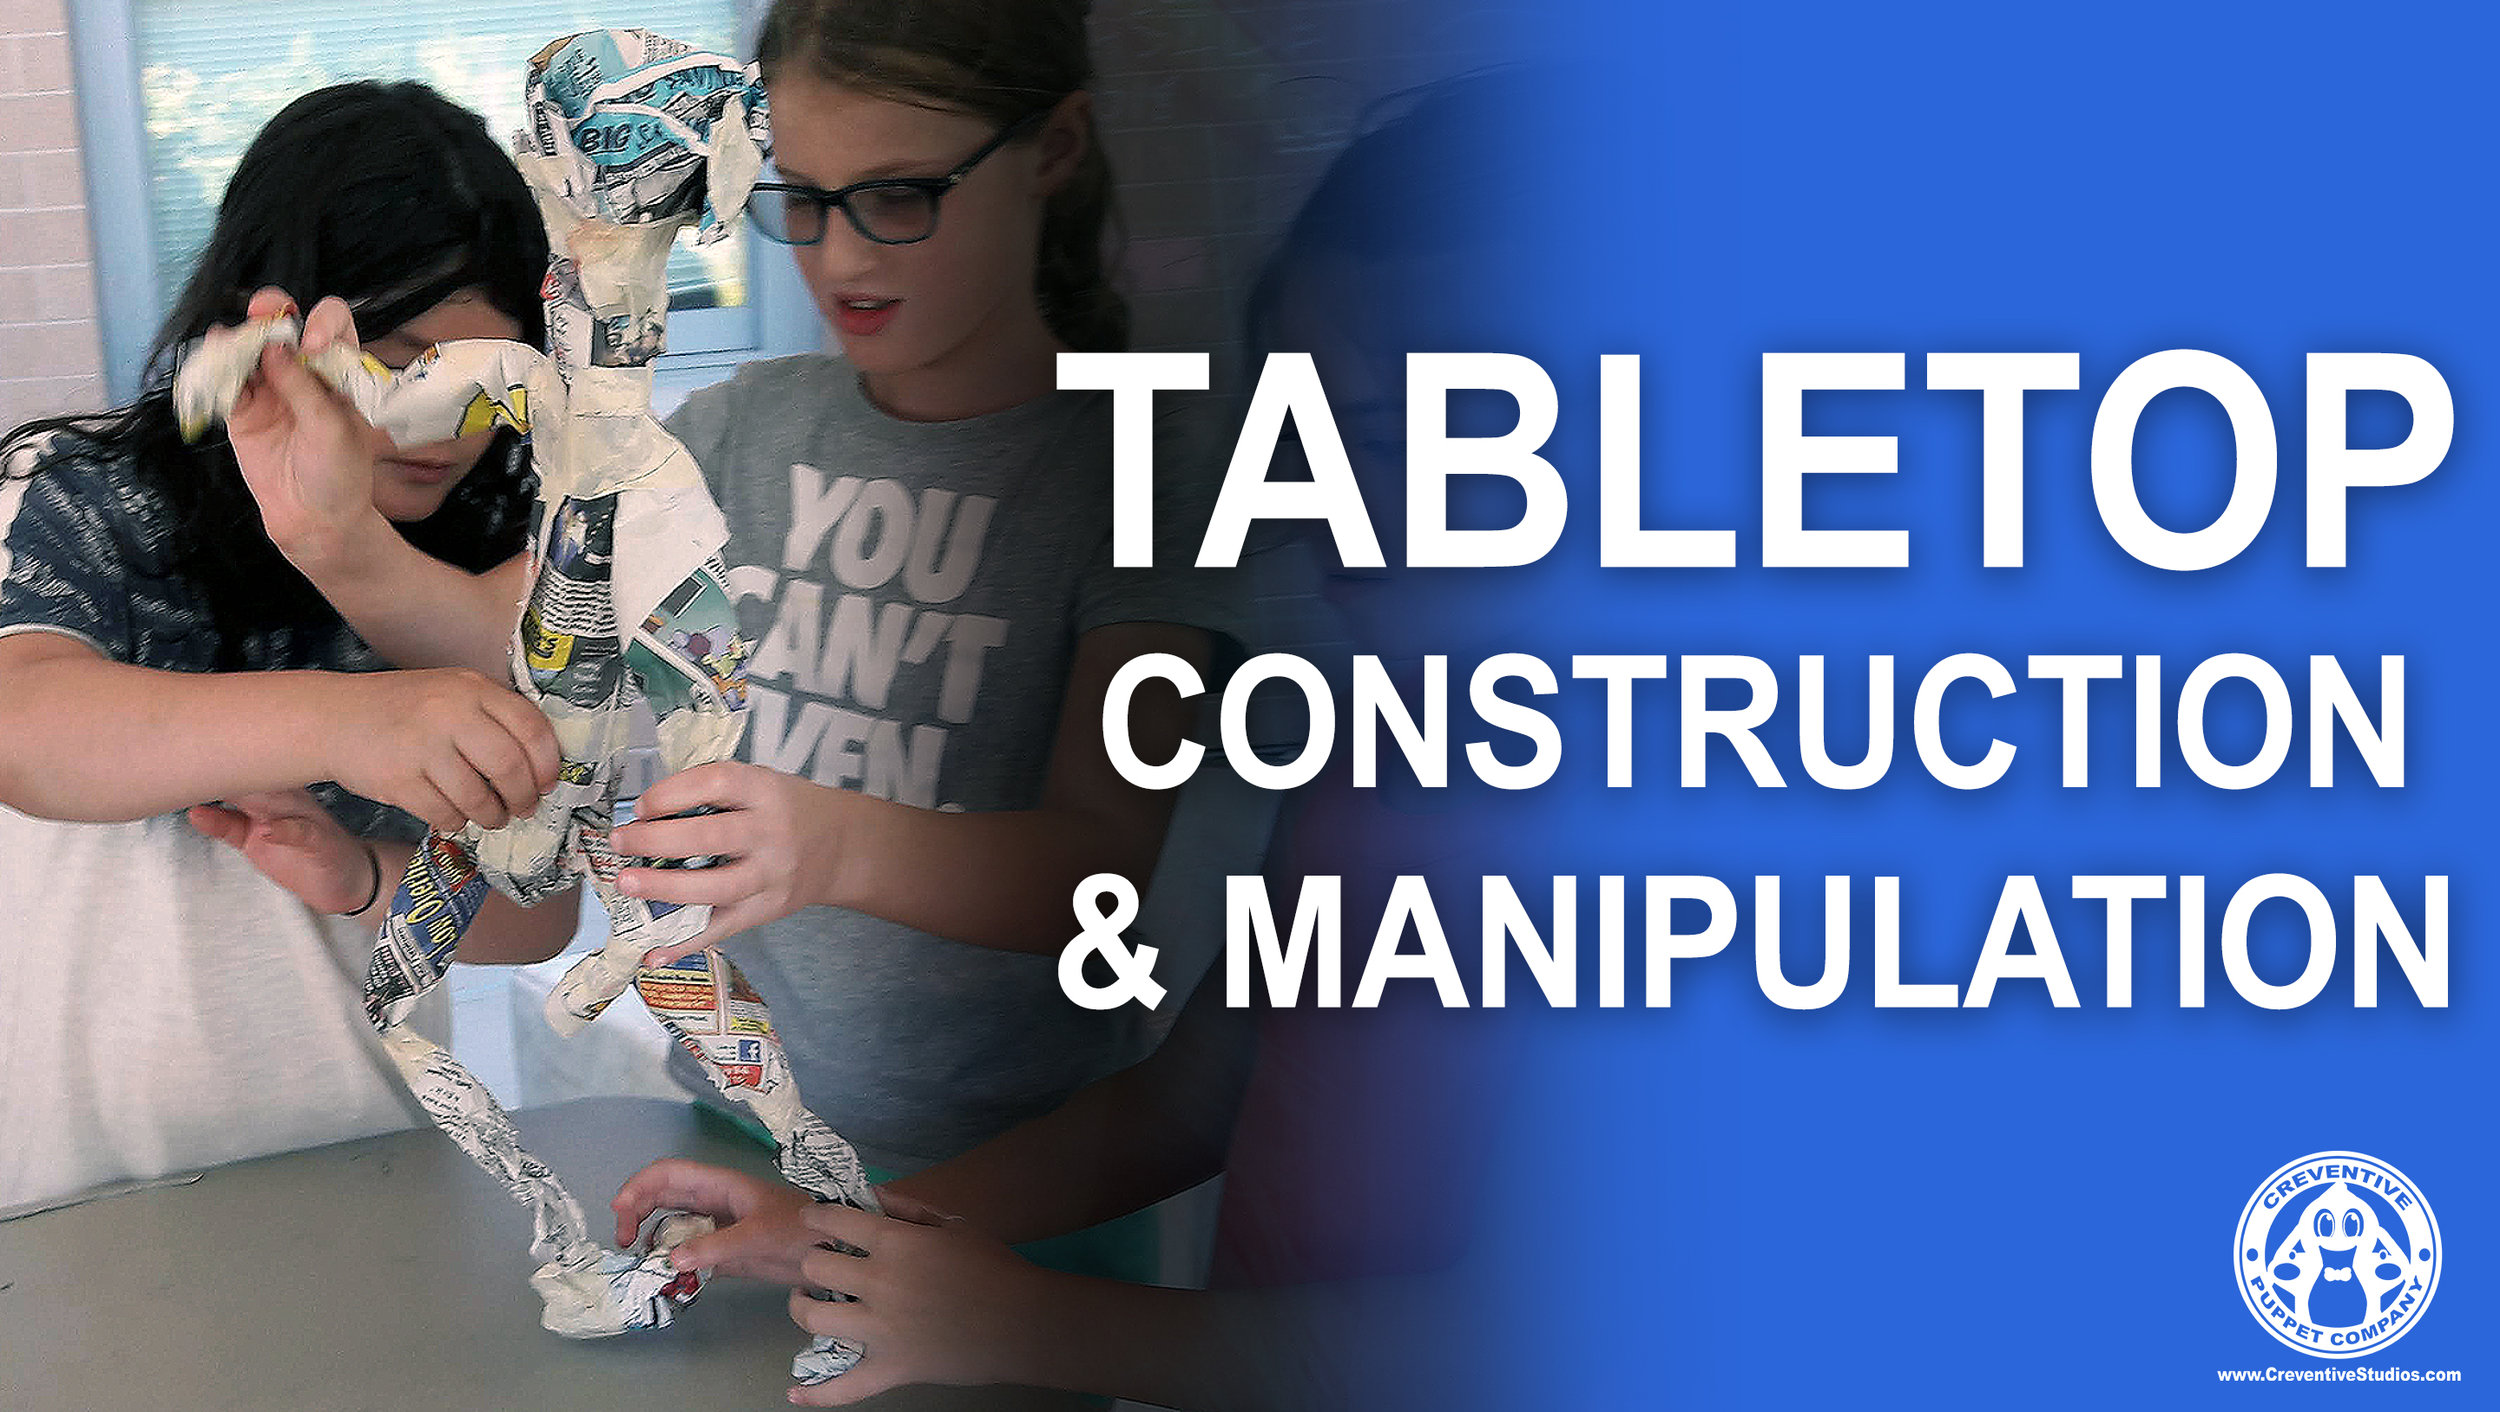 Tabletop_ConstructionManipulation_Banner.jpg